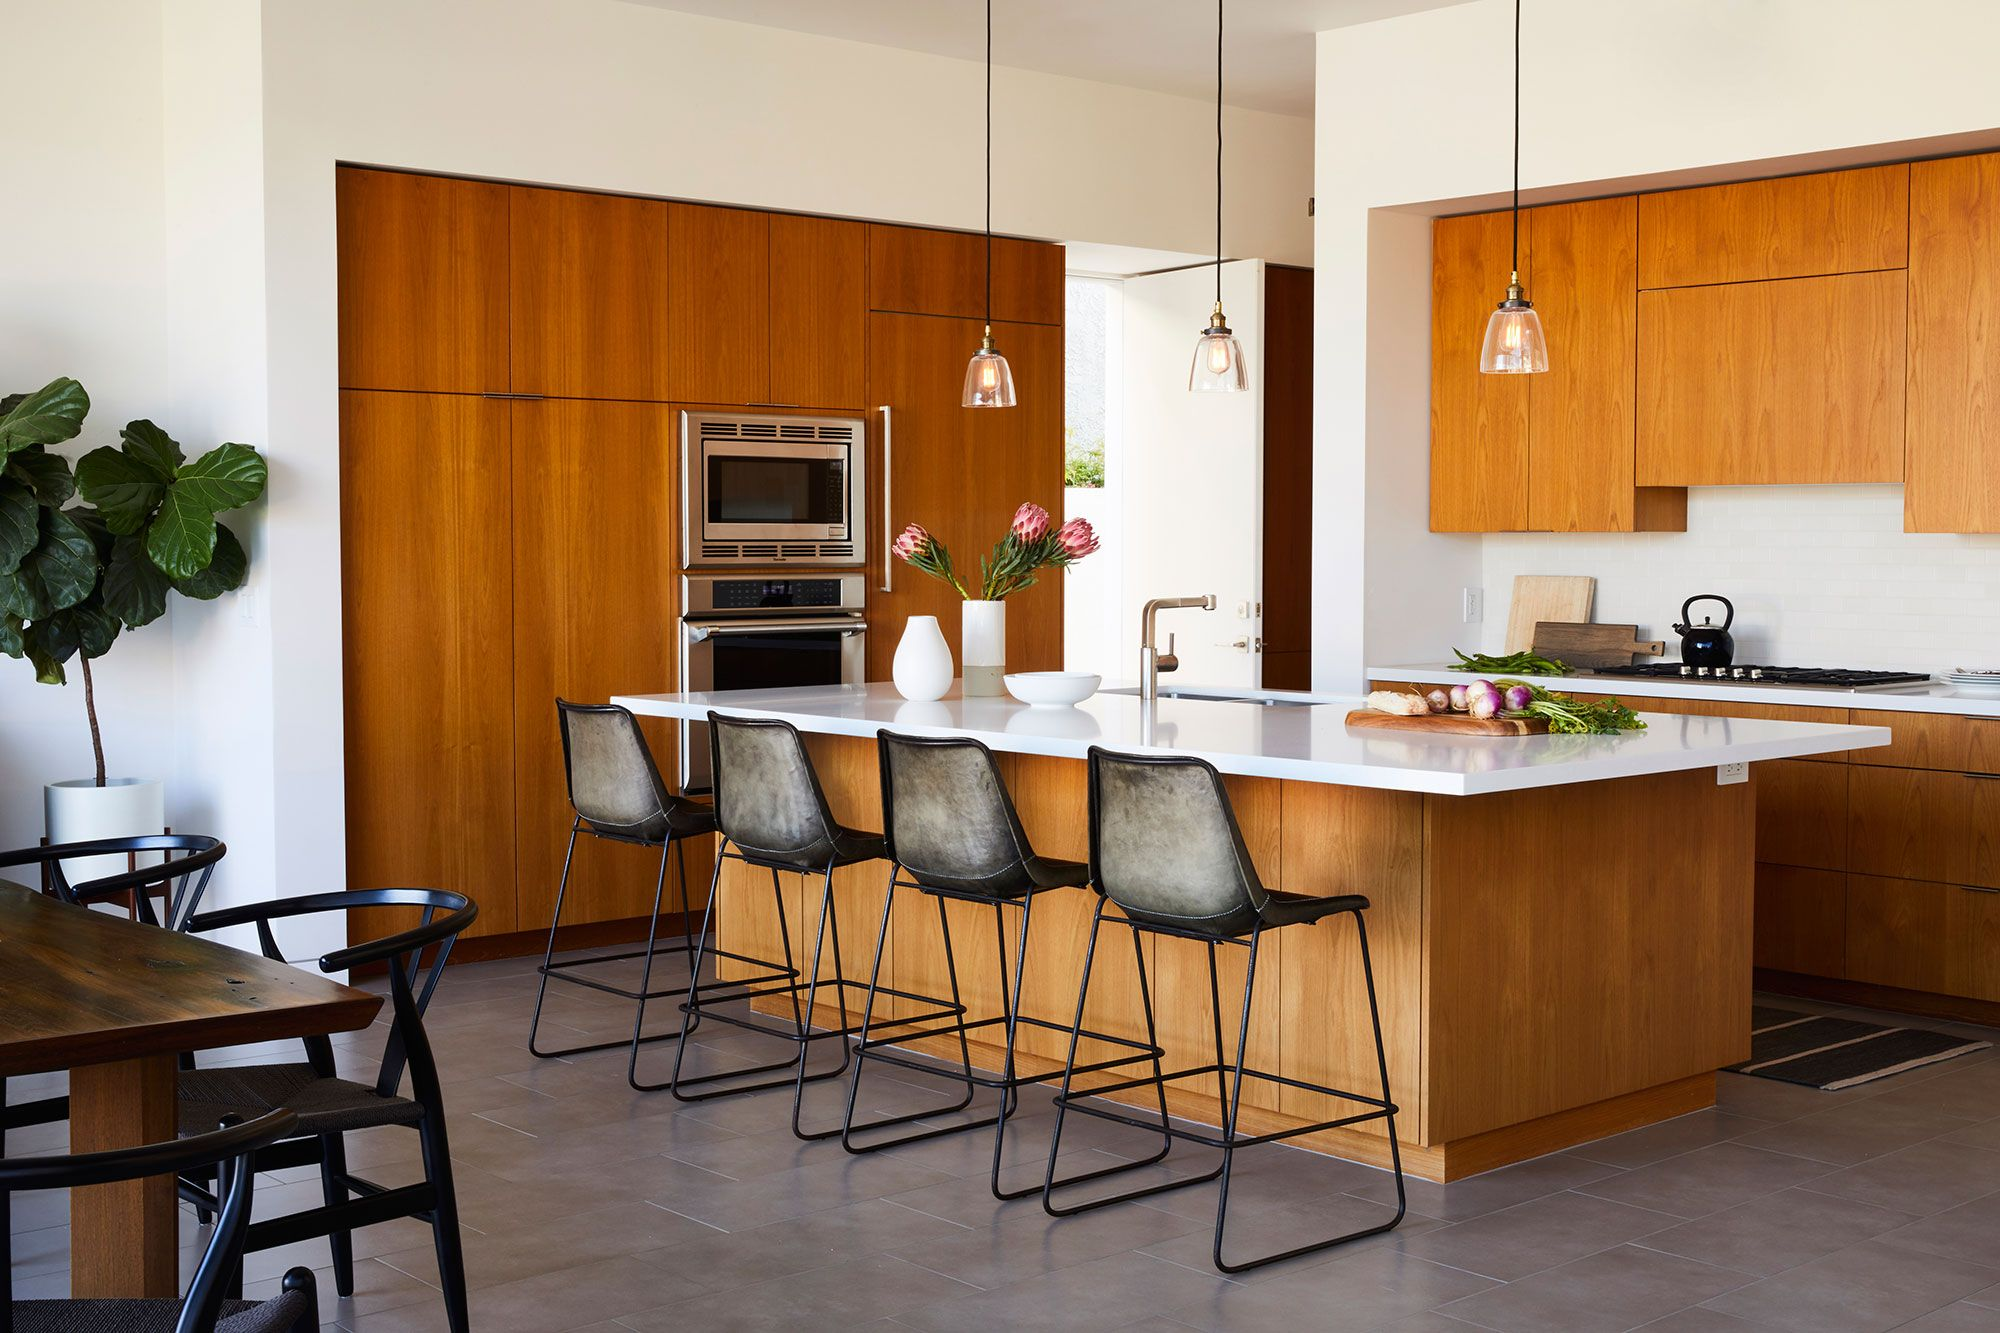 10 Modern Cabinets That\u0027ll Freshen Up Your Kitchen & 70+ Kitchen Design \u0026 Remodeling Ideas - Pictures of Beautiful Kitchens